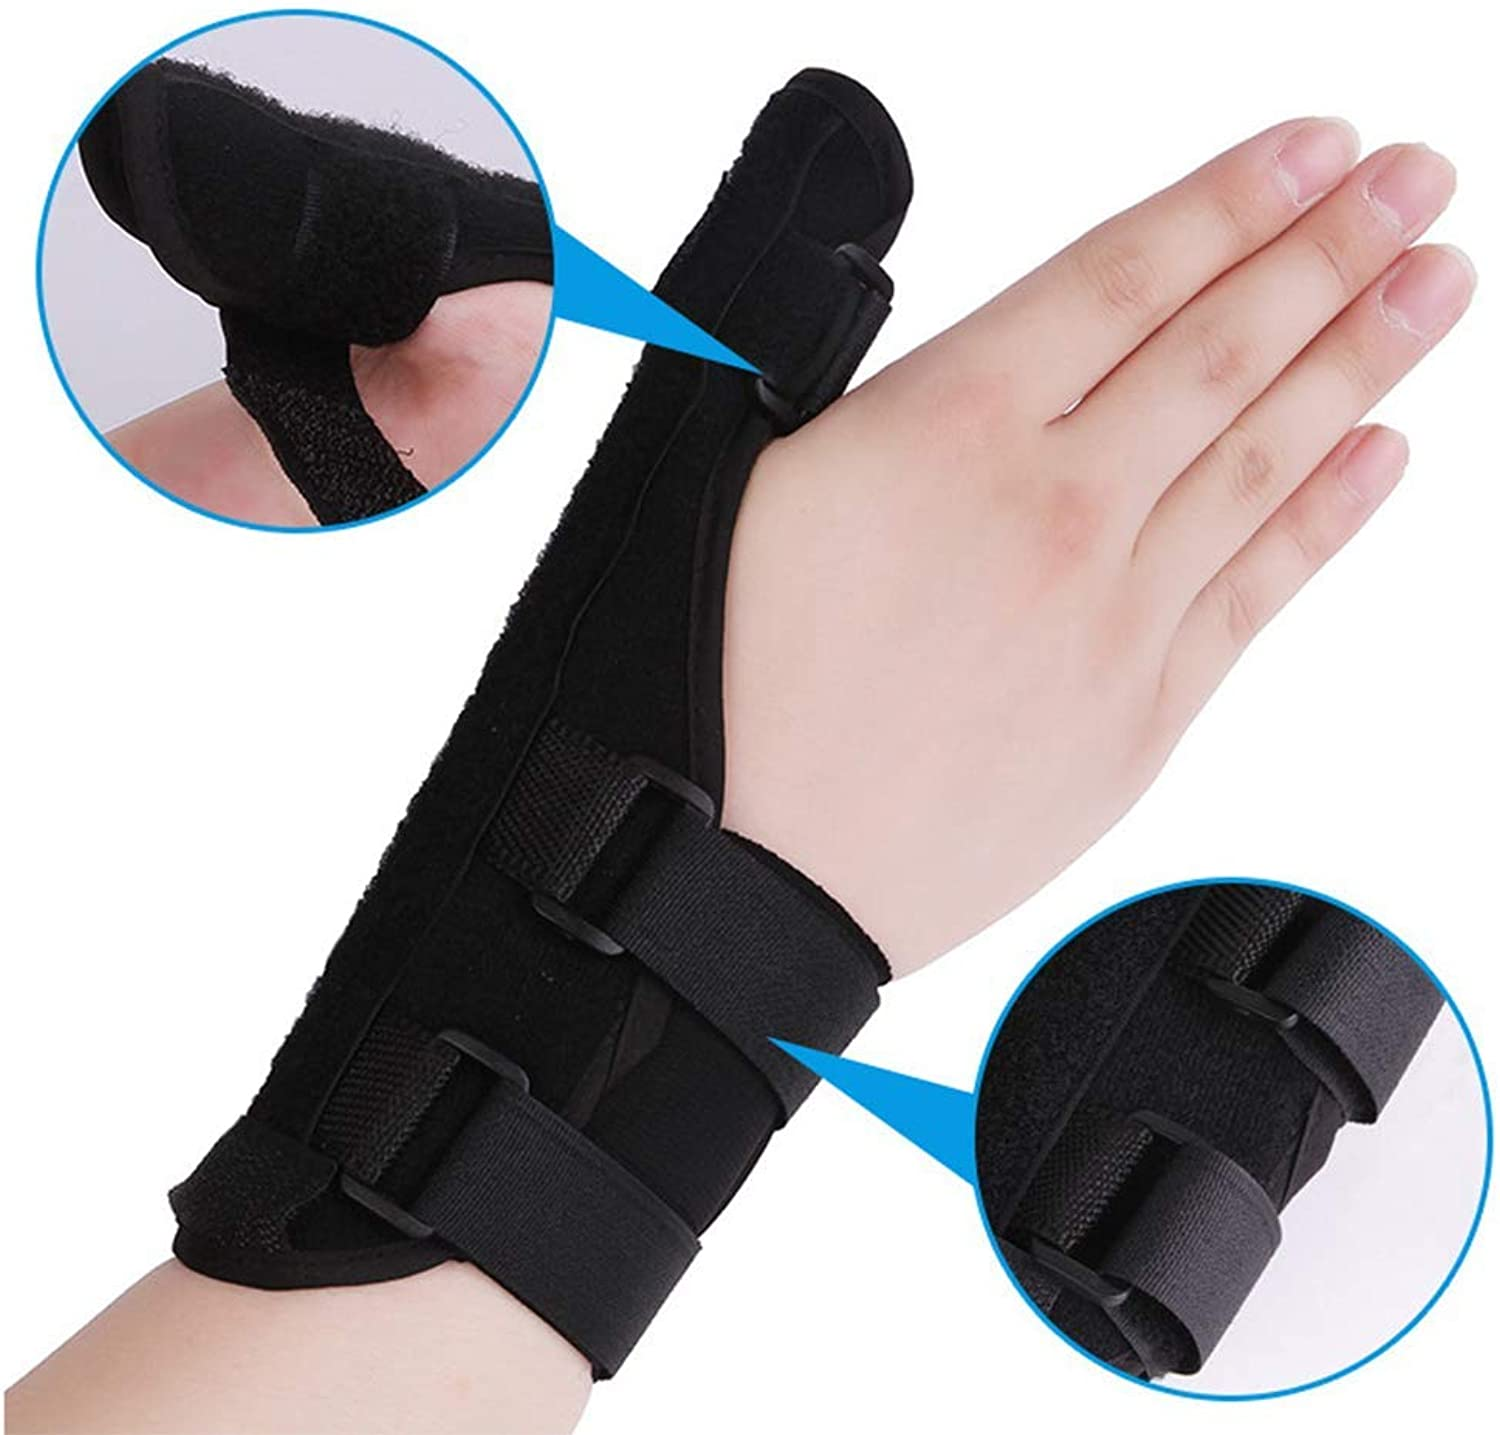 Neoprene Thumb Support Bracespica  Splint Helps Relieve Thumb Pain & Injury, Tendonitis of The Wrist, De Quervain's, and Sprains, Left Hand Right Hand,Left,S